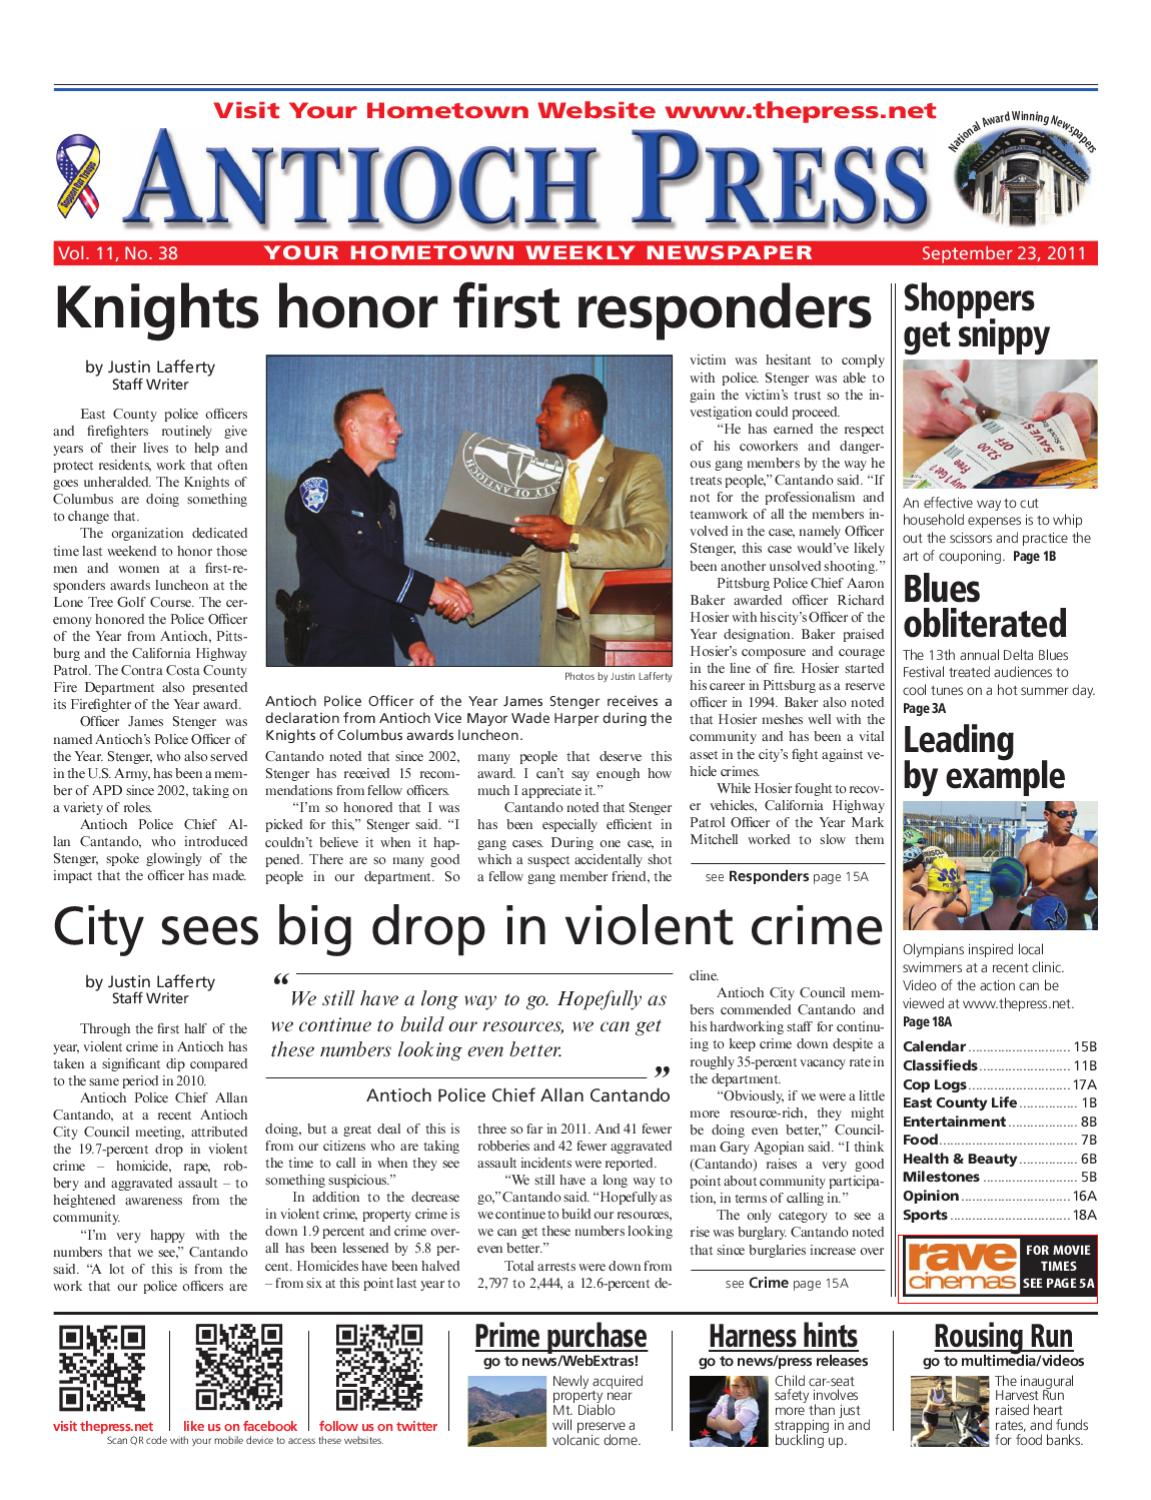 antioch press 09 23 11 by brentwood press publishing issuu rh issuu com